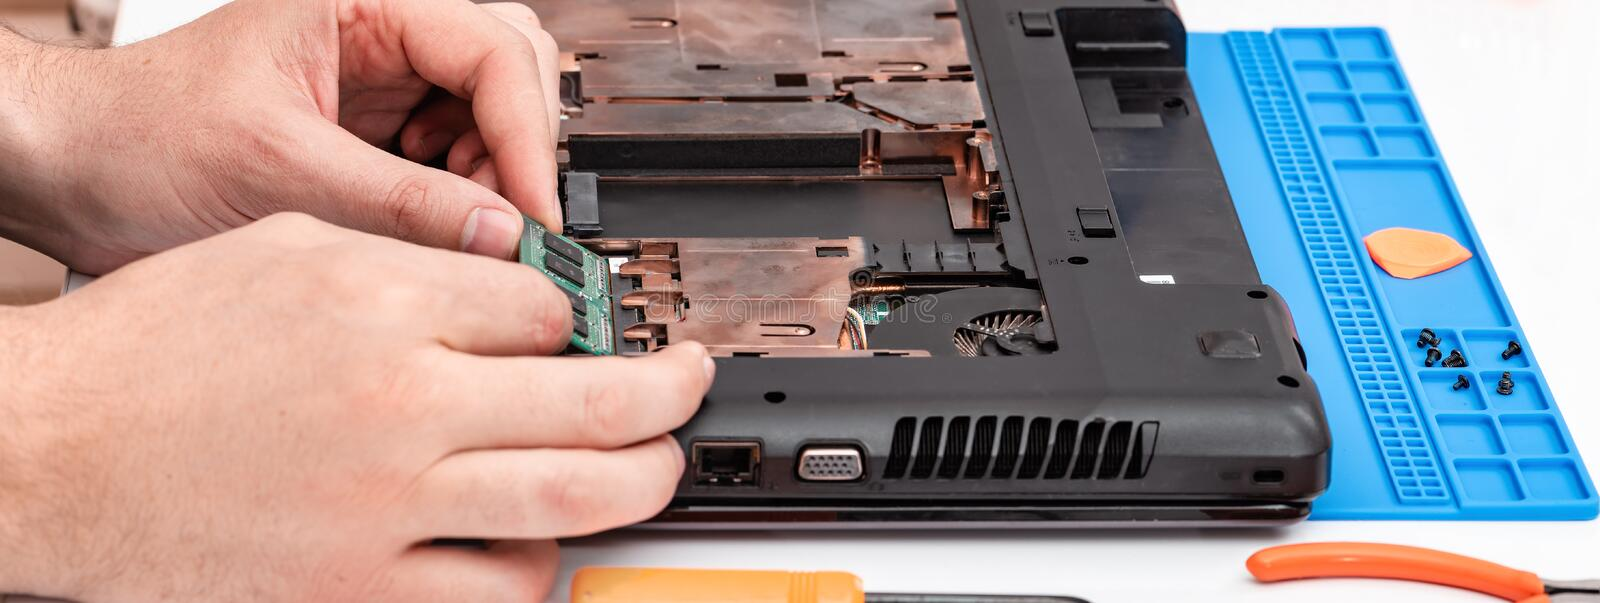 Engineer makes dismantling of RAM for disassembling and repairing a laptop royalty free stock images